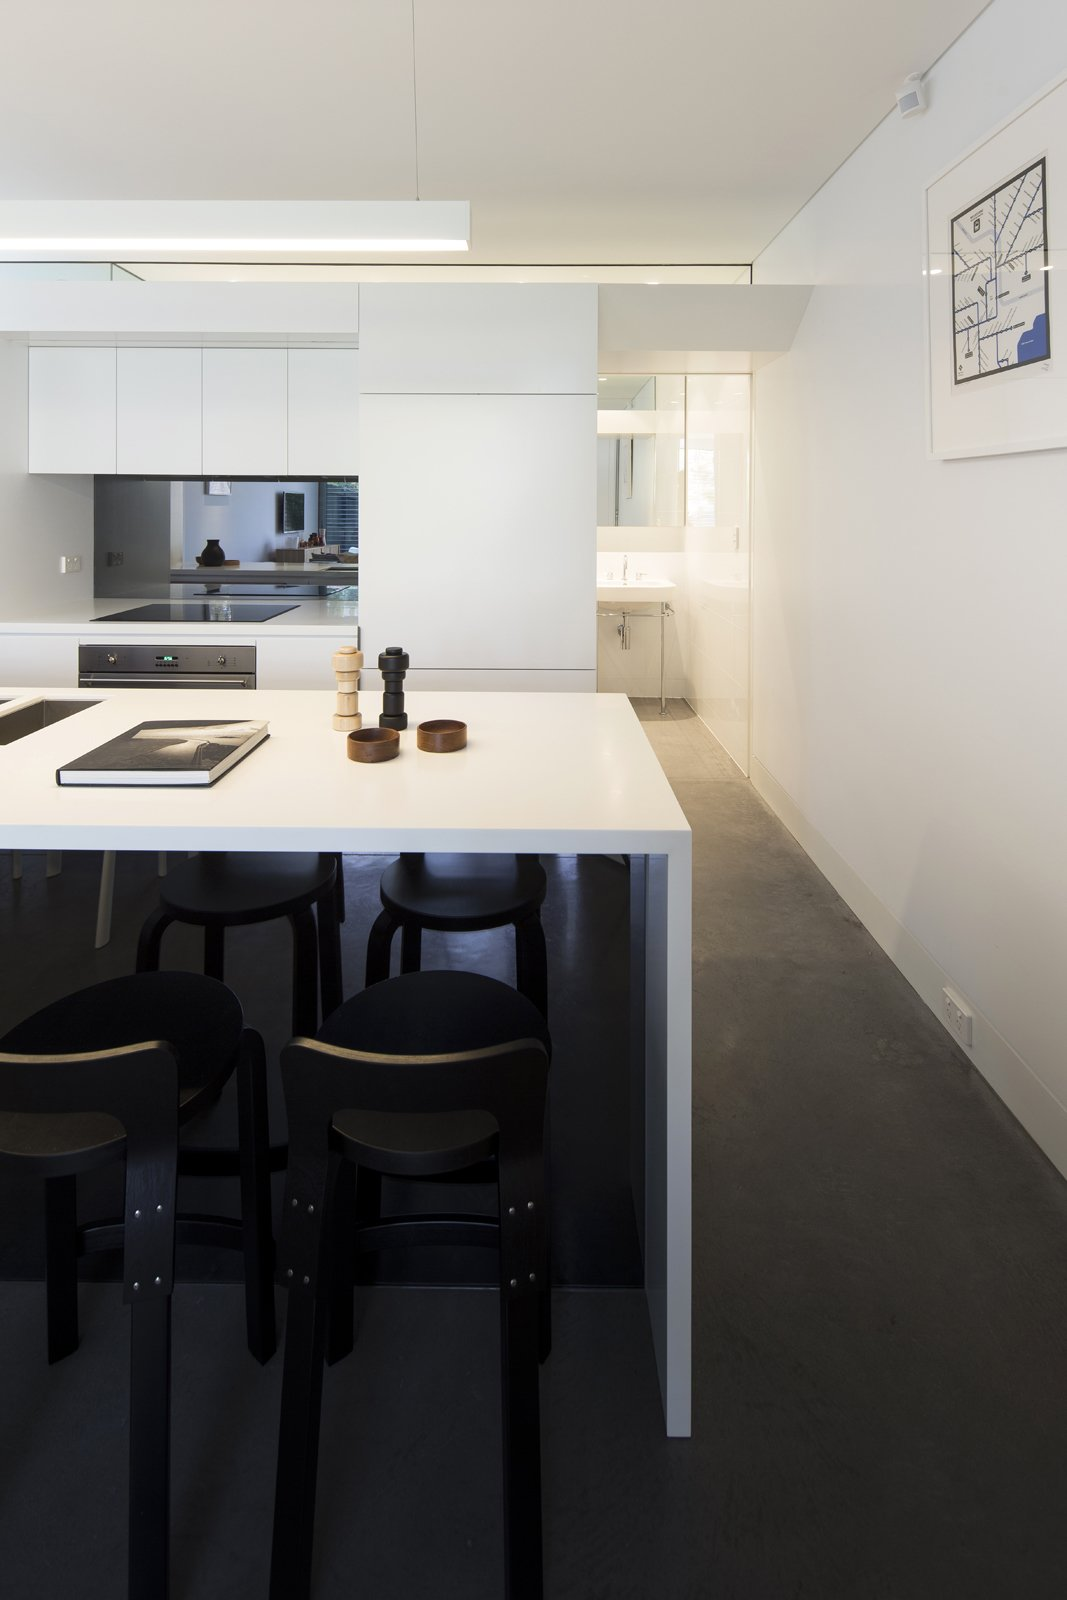 Casual meals are eaten at the kitchen's glacier white Corian countertop, which features Aalto K65 stools. The island's Blanco sinks offer a direct, uninterrupted sightline to the garden.  Photo 5 of 9 in Renovation Near Sydney Opens Home Onto a Lush Garden